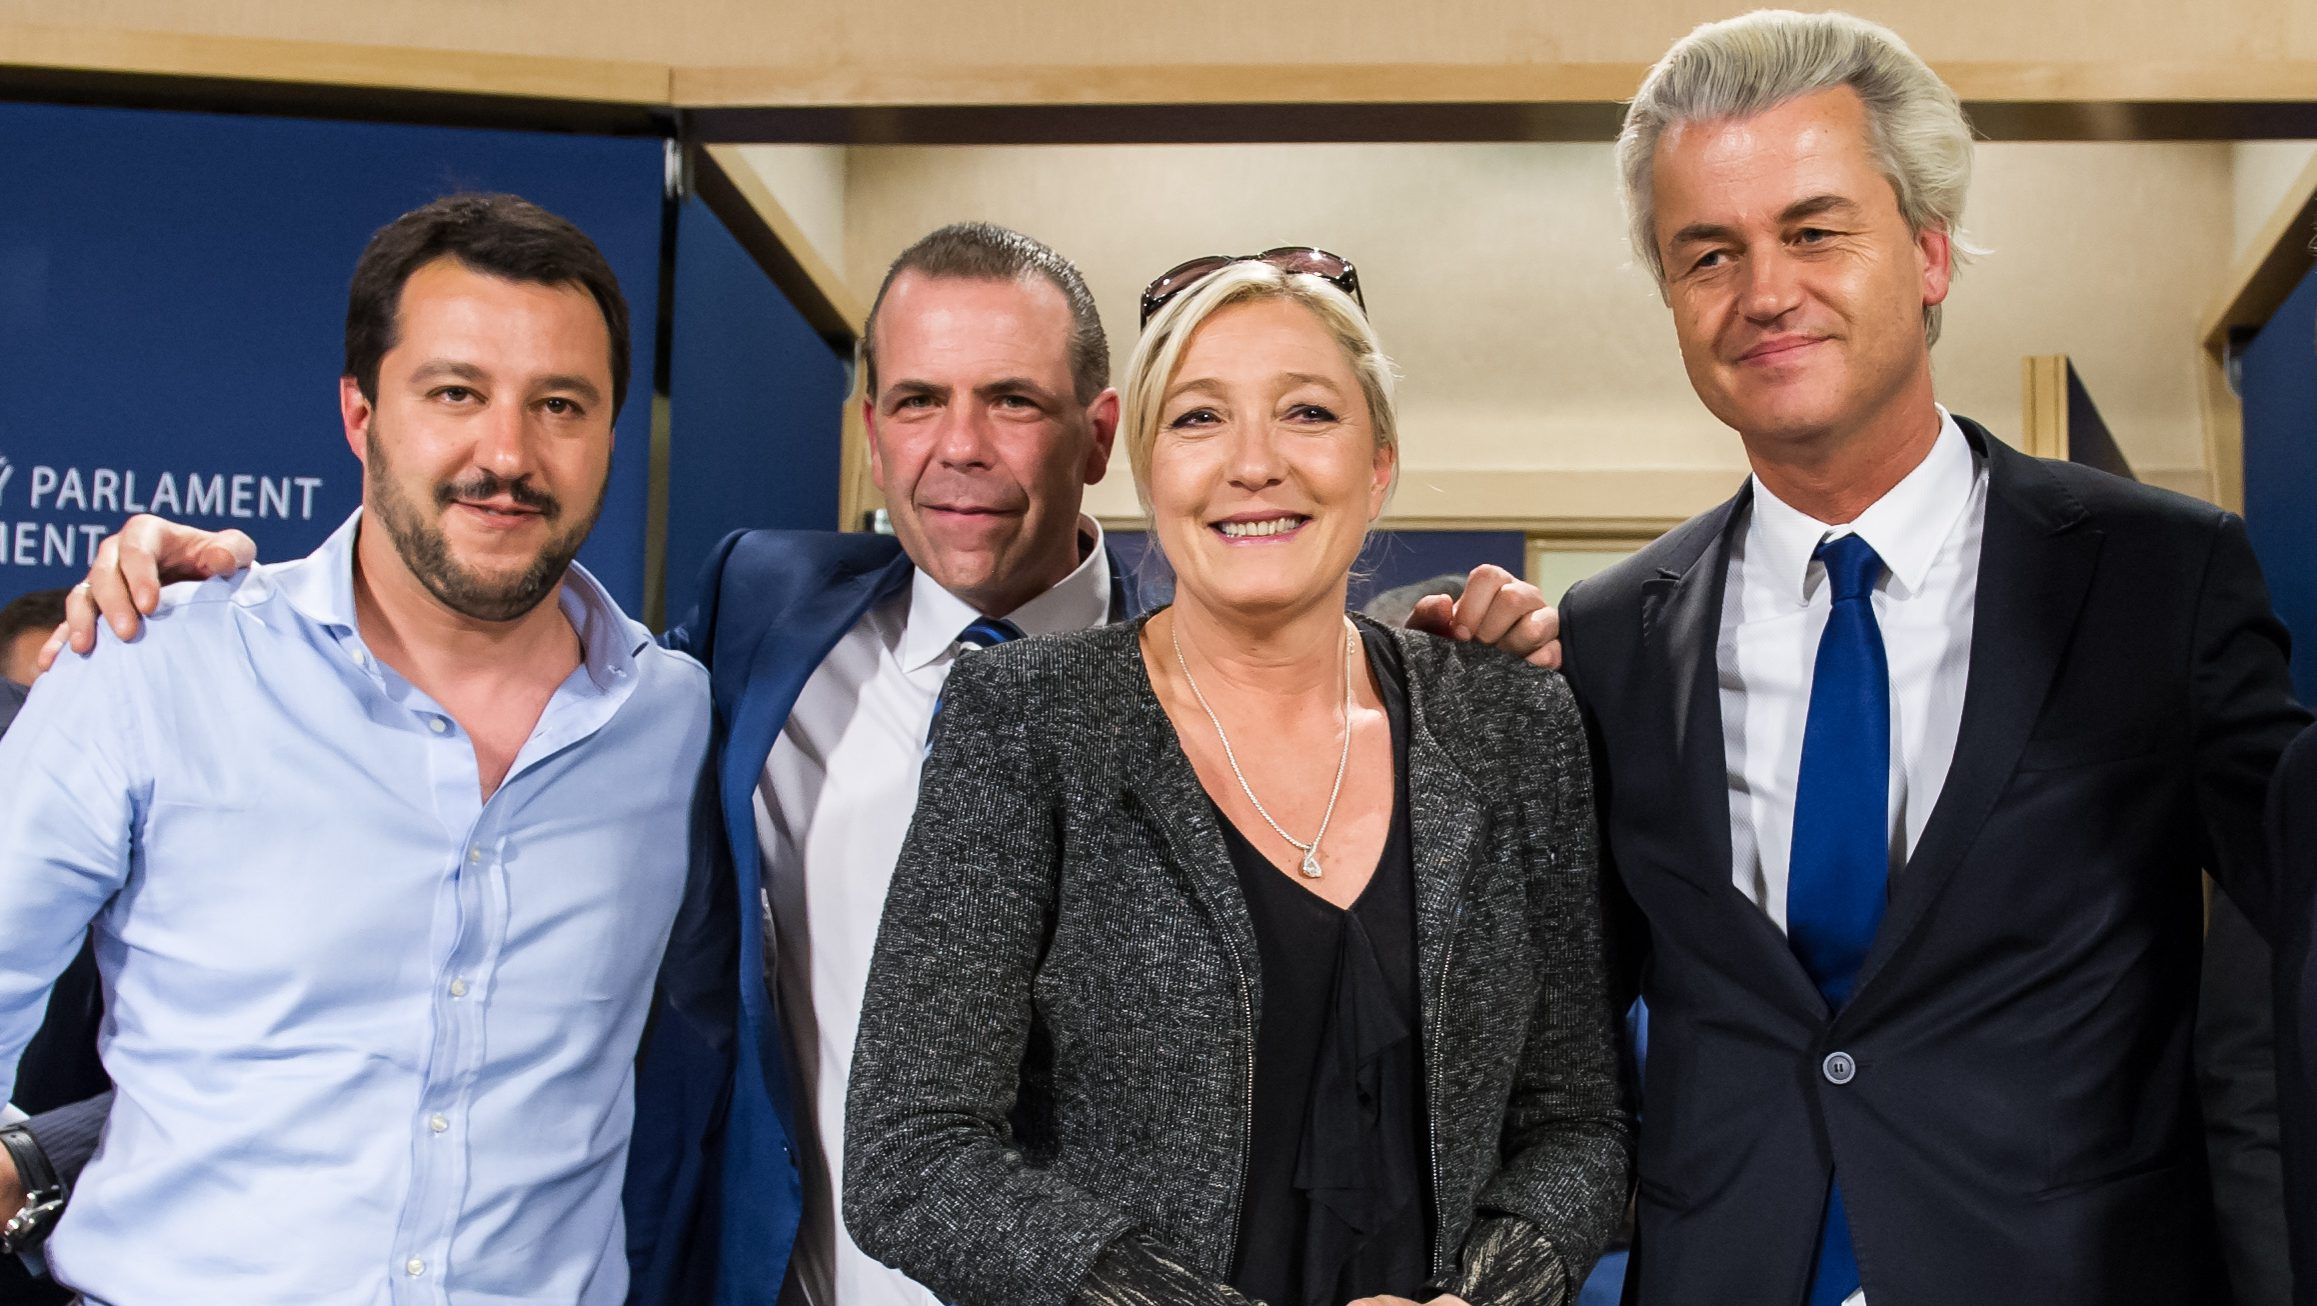 FILE - In this Wednesday, May 28, 2014 file photo, French far-right National Front party leader Marine Le Pen, second right, poses for photographers with Dutch far-right Freedom Party leader Geert Wilders, right, Austria's Secretary General of the Freedom Party Harald Vilimsky, second left, and Federal Secretary of Italy's Northern League Matteo Salvini after a meeting of EU far-right parties at the European Parliament in Brussels. The election result in Greece on Sunday, Jan. 25, 2015 reflects a growing European backlash against austerity policies. Across the continent, support is growing for parties and groups outside the mainstream like Syriza, which triumphed in Greece on Sunday after pledging to renegotiate the country's huge bailout agreements. (AP Photo/Geert Vanden Wijngaert, File)